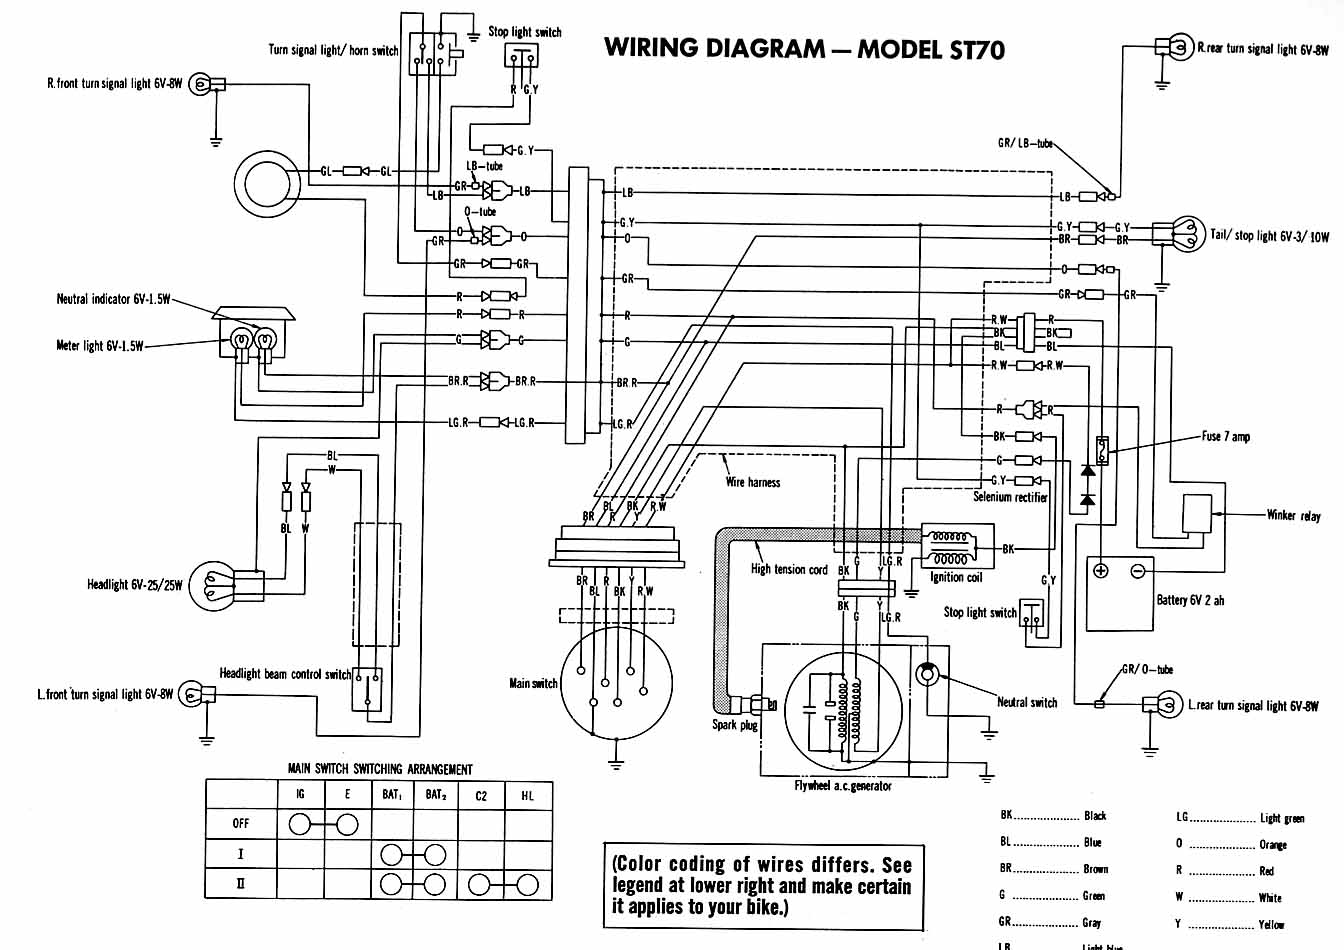 Honda Bike Wiring Diagram Another Blog About Quad Minimoto Alternator Cd 70